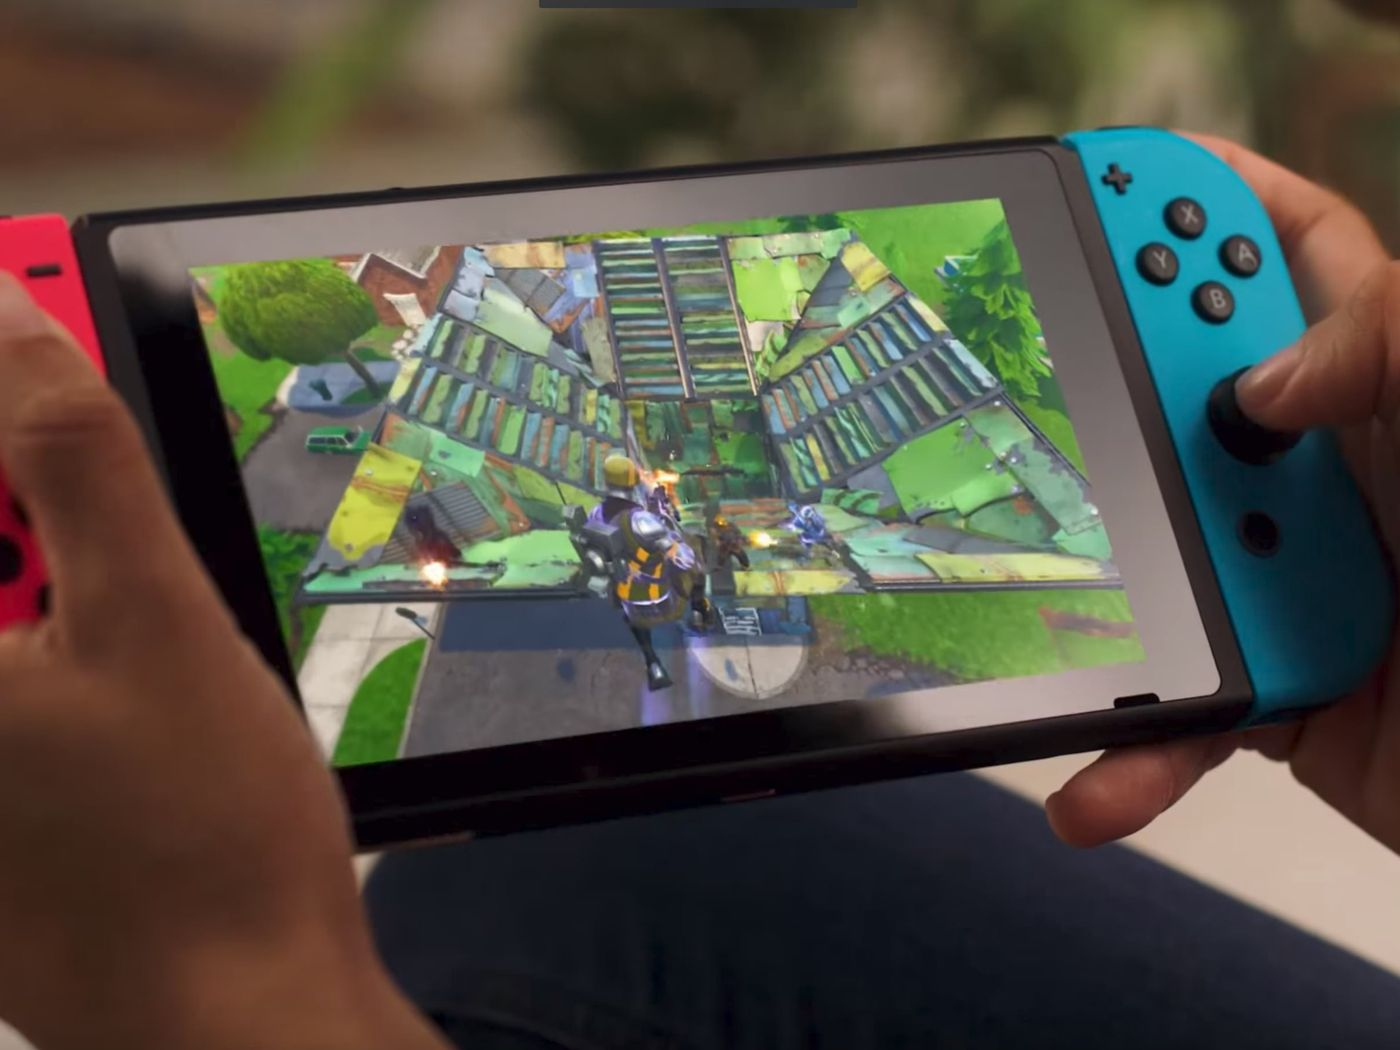 Sony is blocking Fortnite cross-play between PS4 and